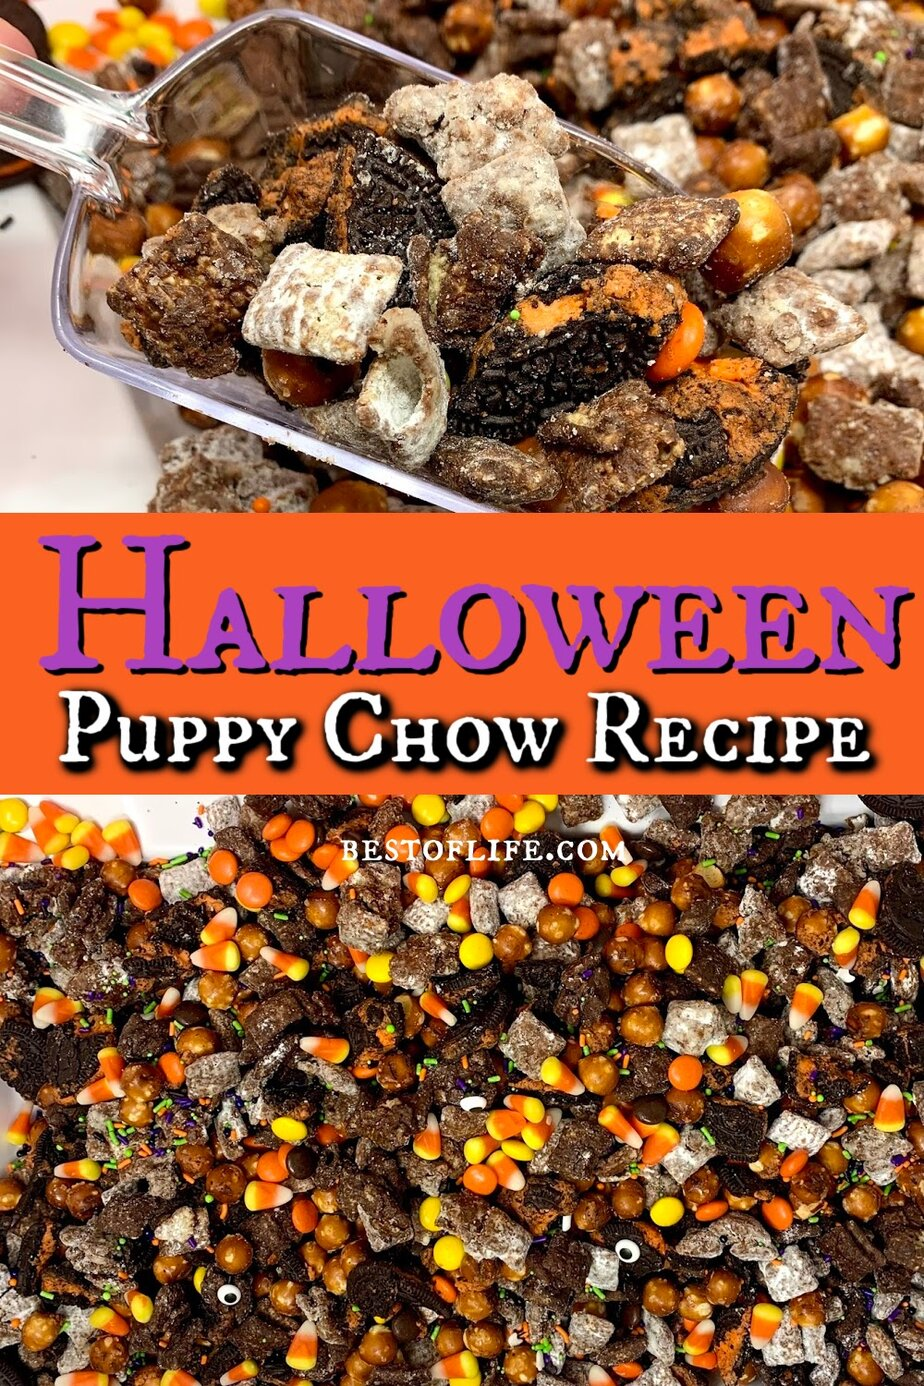 Make this Halloween puppy chow recipe for a fun and festive Halloween party recipe that both kids and adults will enjoy! Halloween Party Recipes | Halloween Snack Recipes | Recipes for Halloween | Snack Recipes for Fall | Fall Treat Recipes | Halloween Puppy Chow Chex Mix Recipe | Check Mix Snack Ideas #halloween #puppychow via @thebestoflife